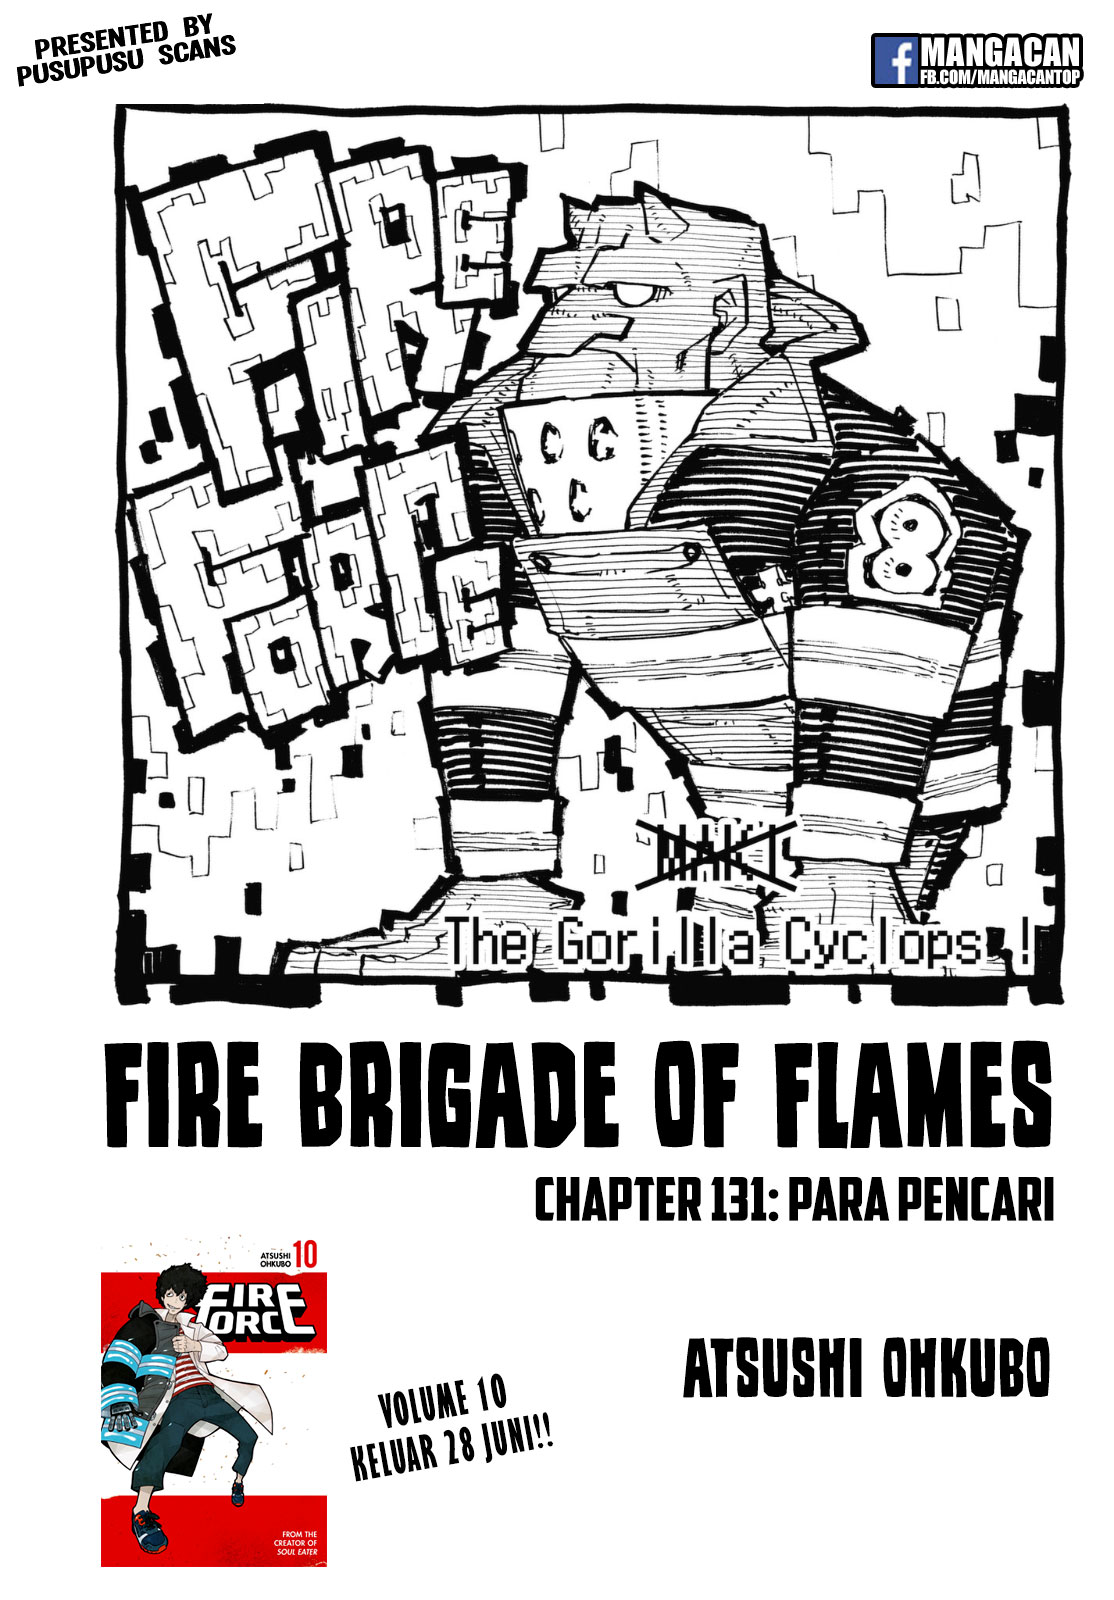 Fire Brigade of Flames Chapter 131